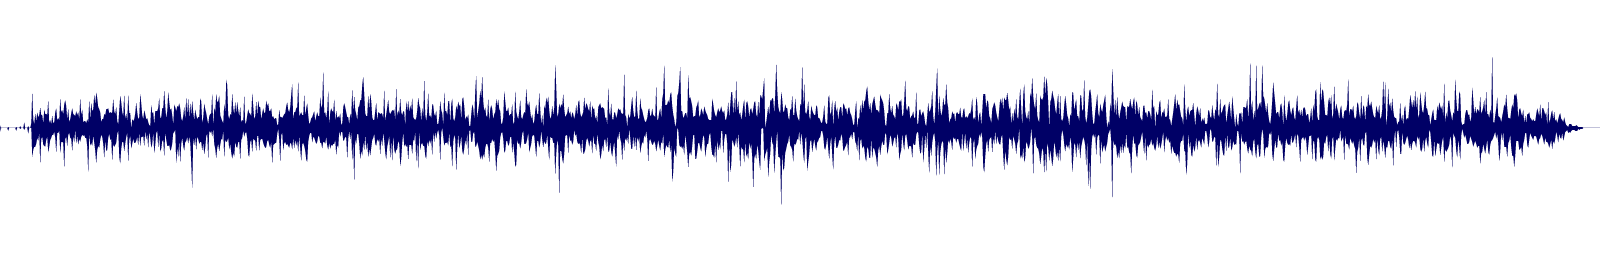 waveform of track #140181